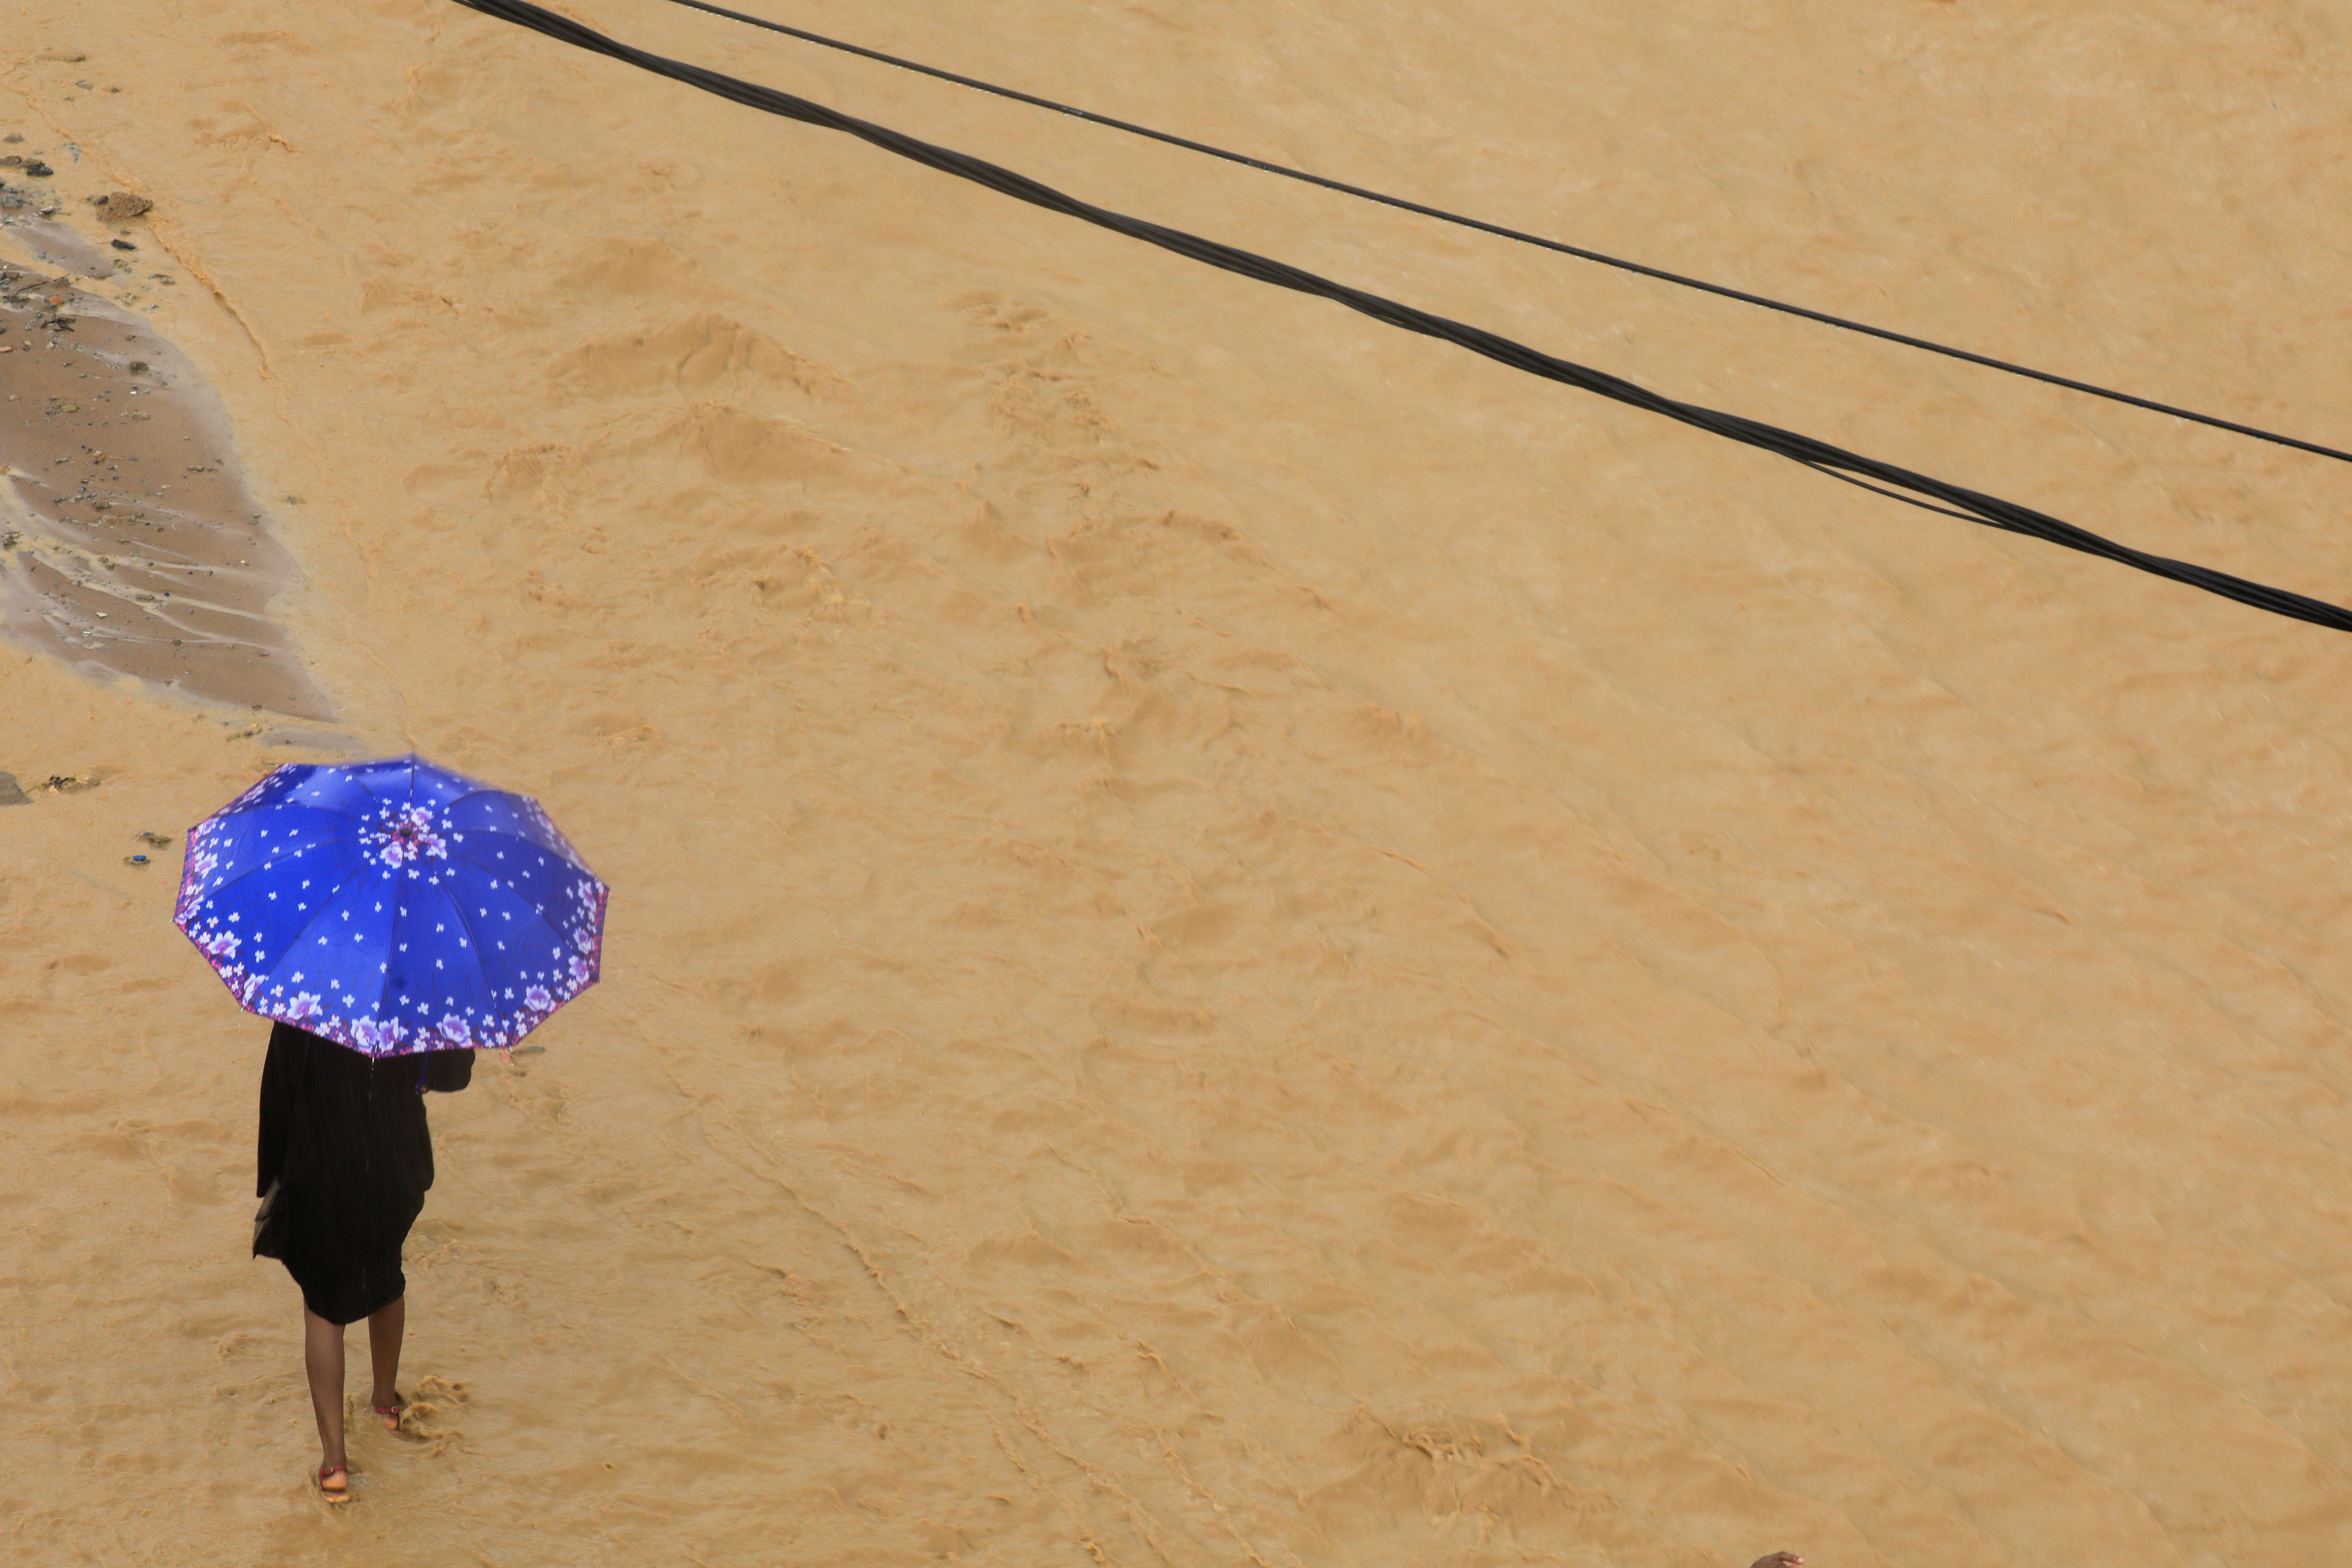 A girl with a blue umbrella is seen in a flooded street in Palmeraie, a neighbourhood of Abidjan, Ivory Coast, June 25, 2020. REUTERS/Thierry Gouegnon - RC2KGH9ASGWP